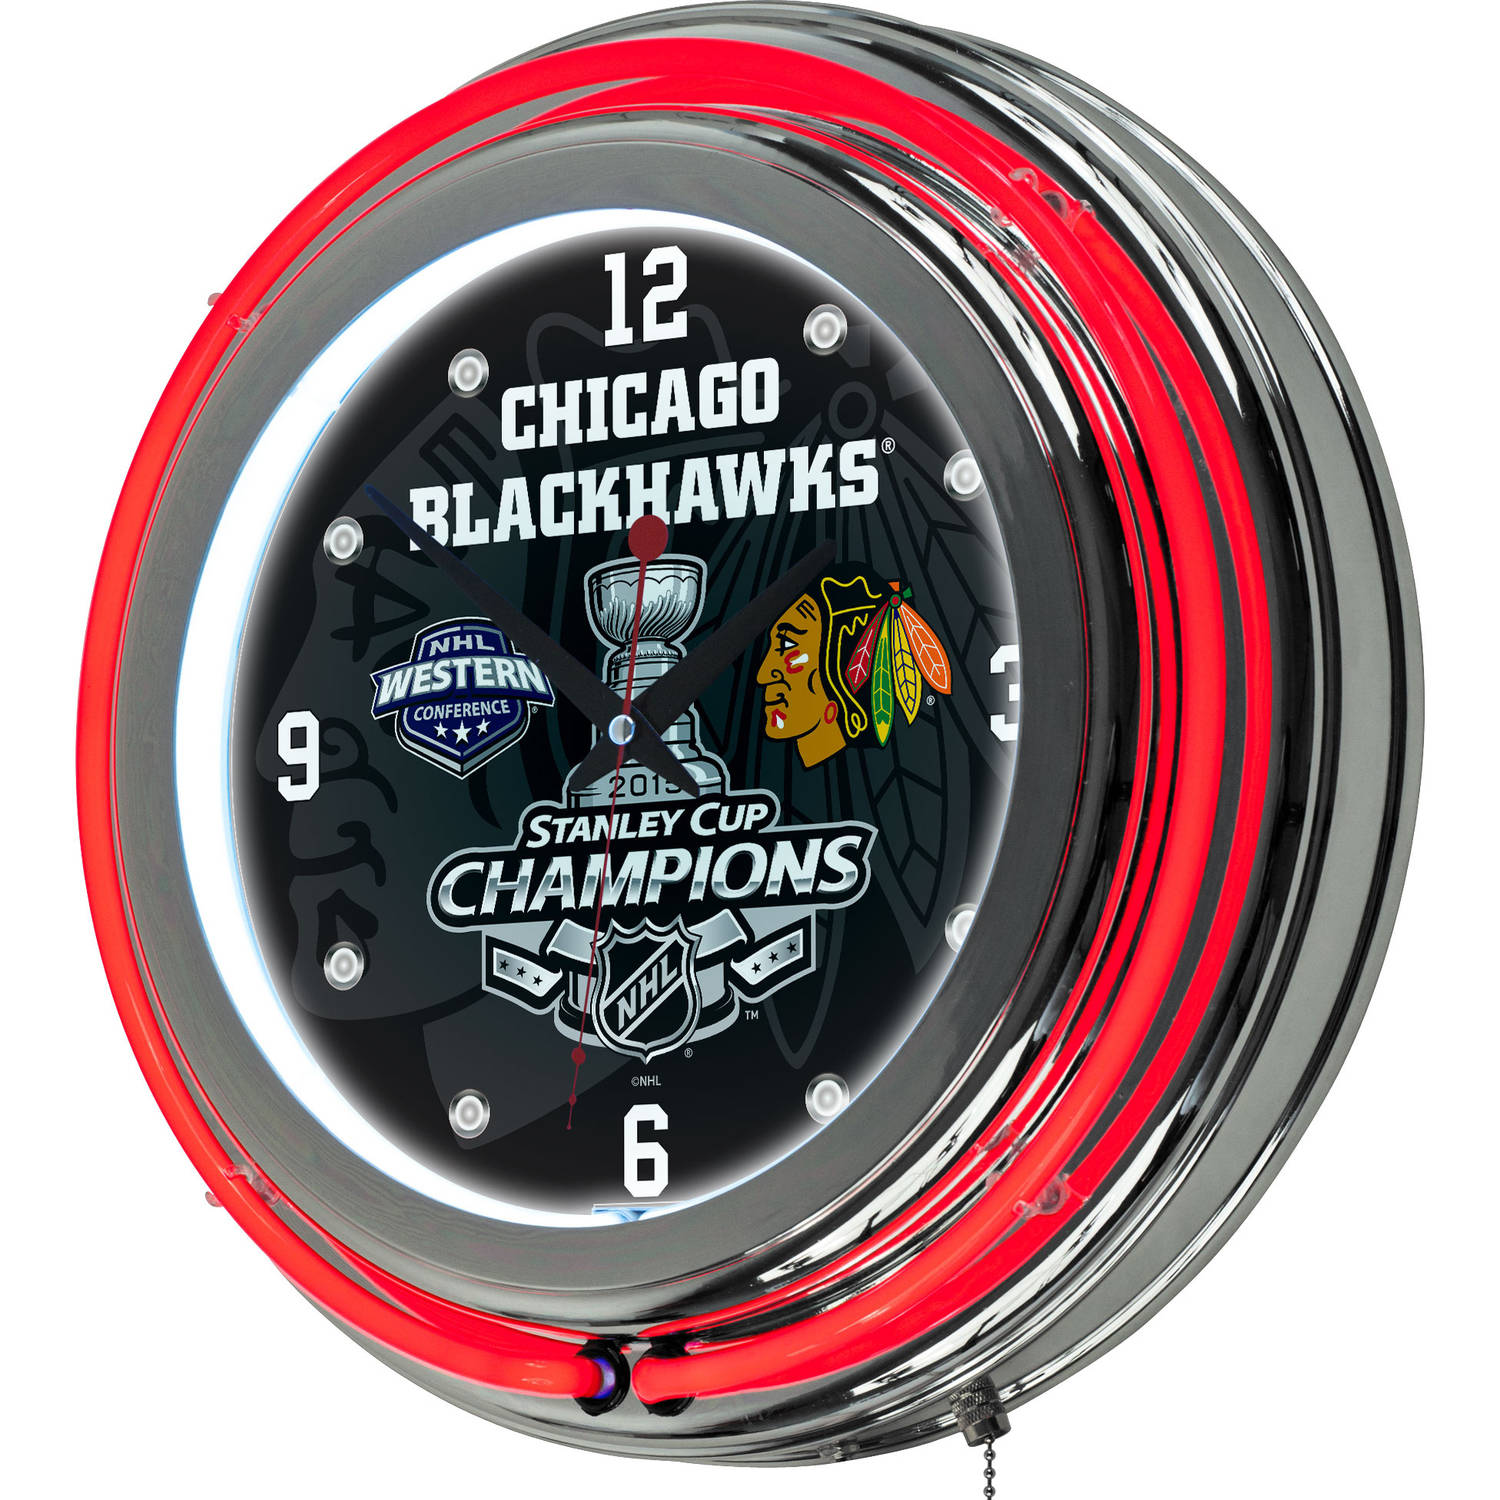 Chicago Blackhawks Chrome Double Neon Clock, 2015 Stanley Cup Champs